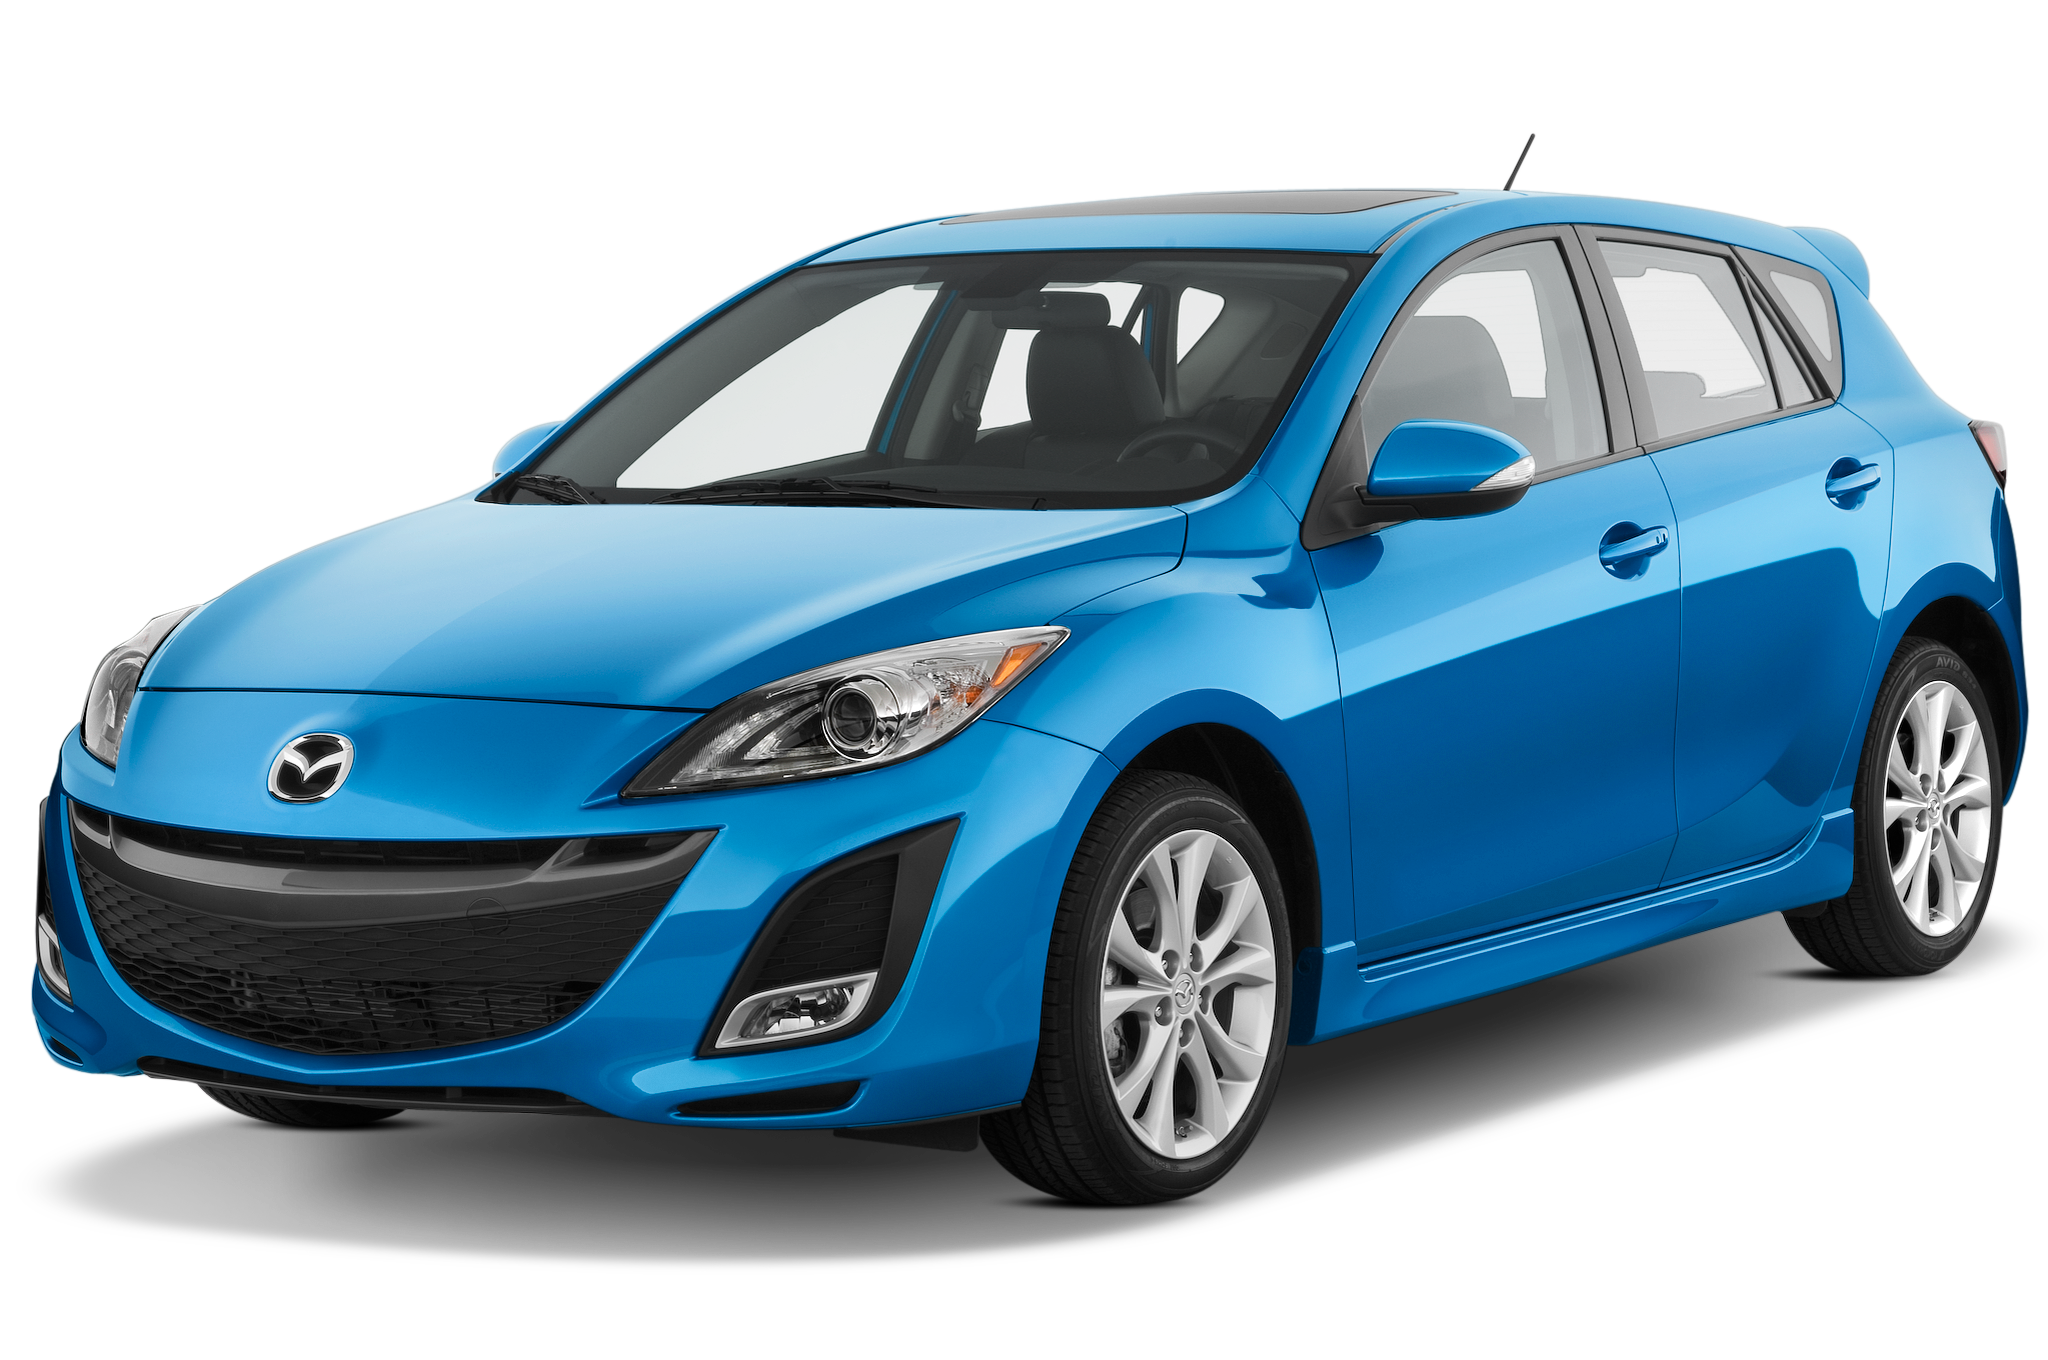 2010 Mazda MAZDA3 Hatchback  Prices amp Reviews